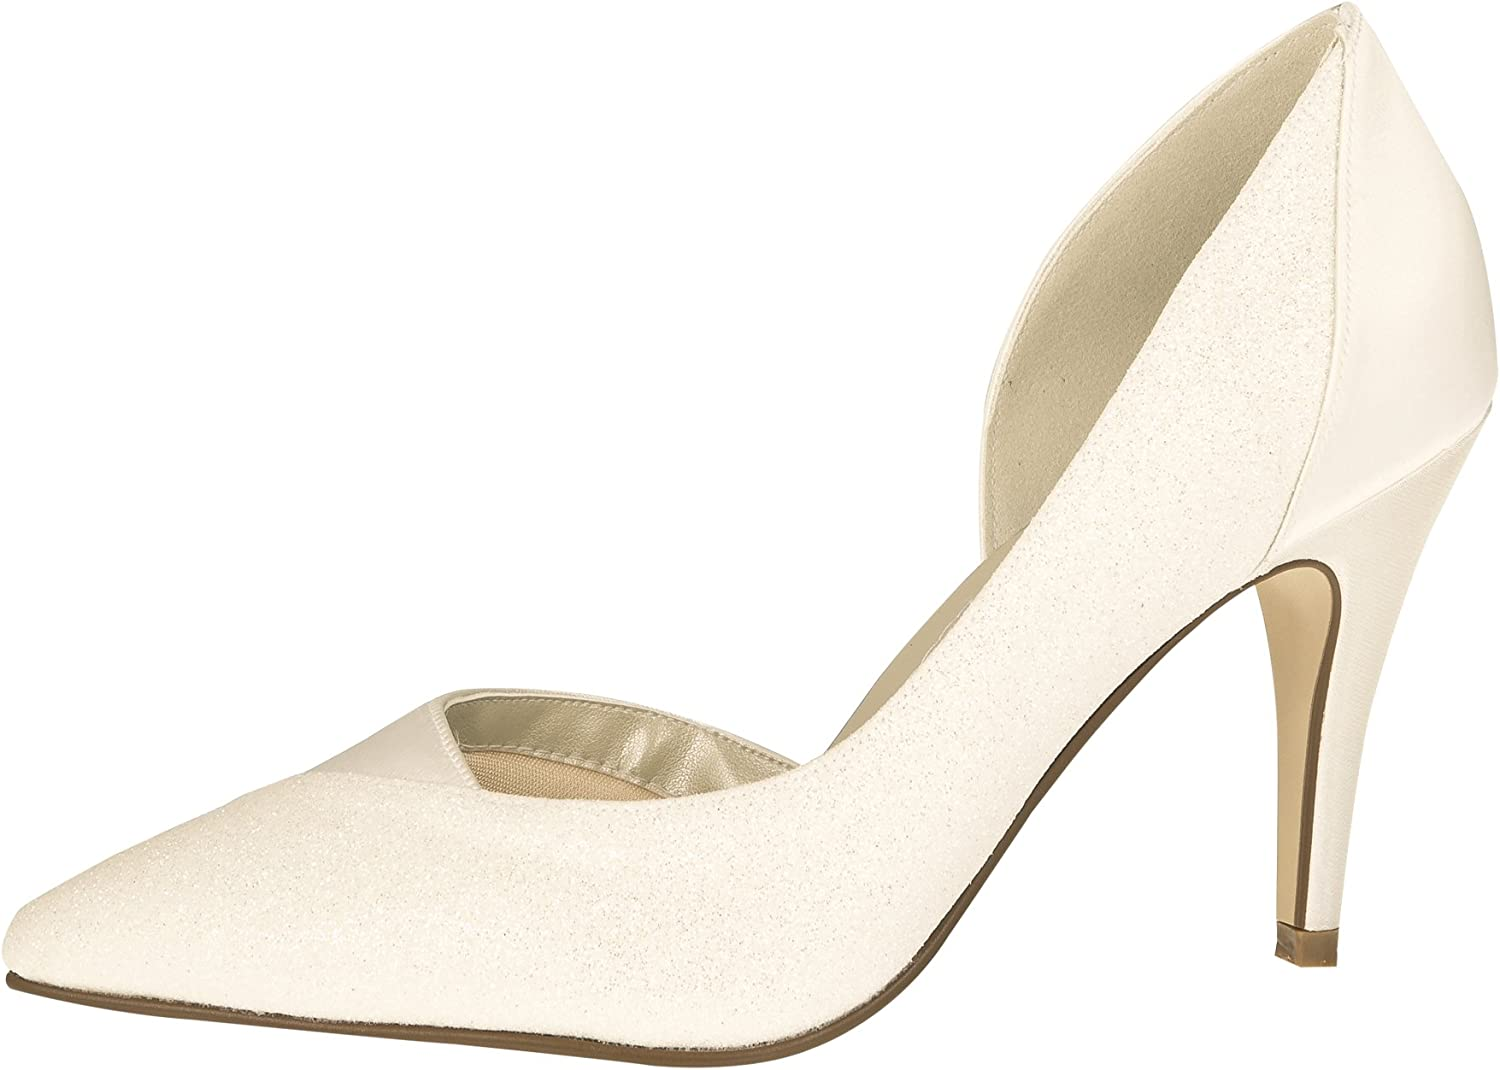 Rainbow Club Roux - Ivory Shimmer Court